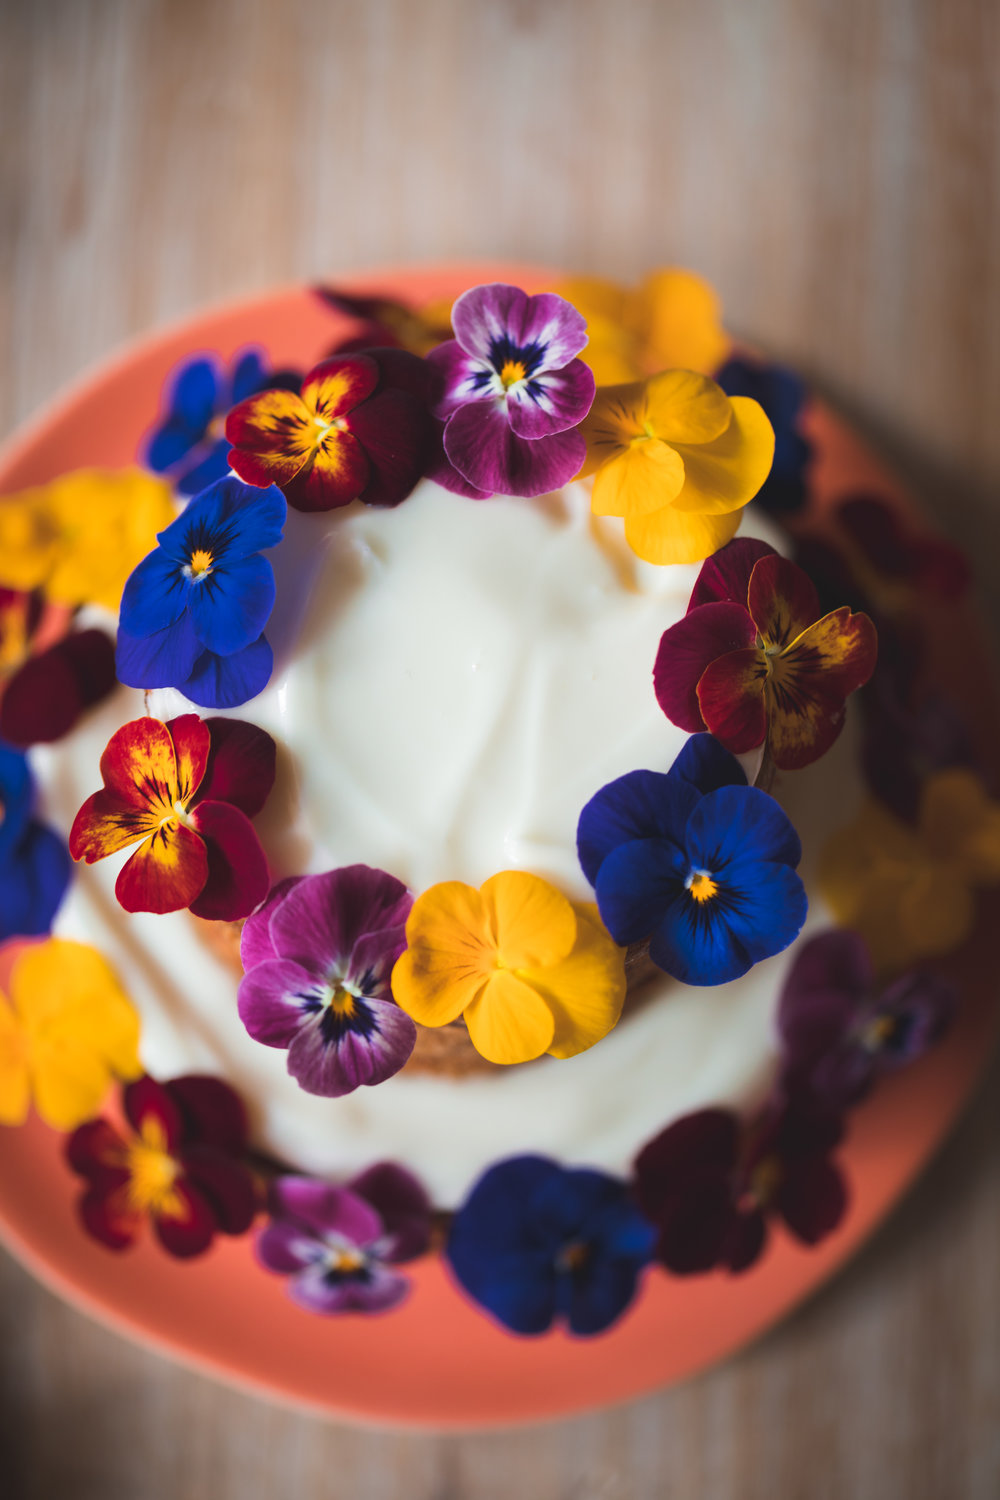 Carrot cake decorated with cream cheese and edible flowers